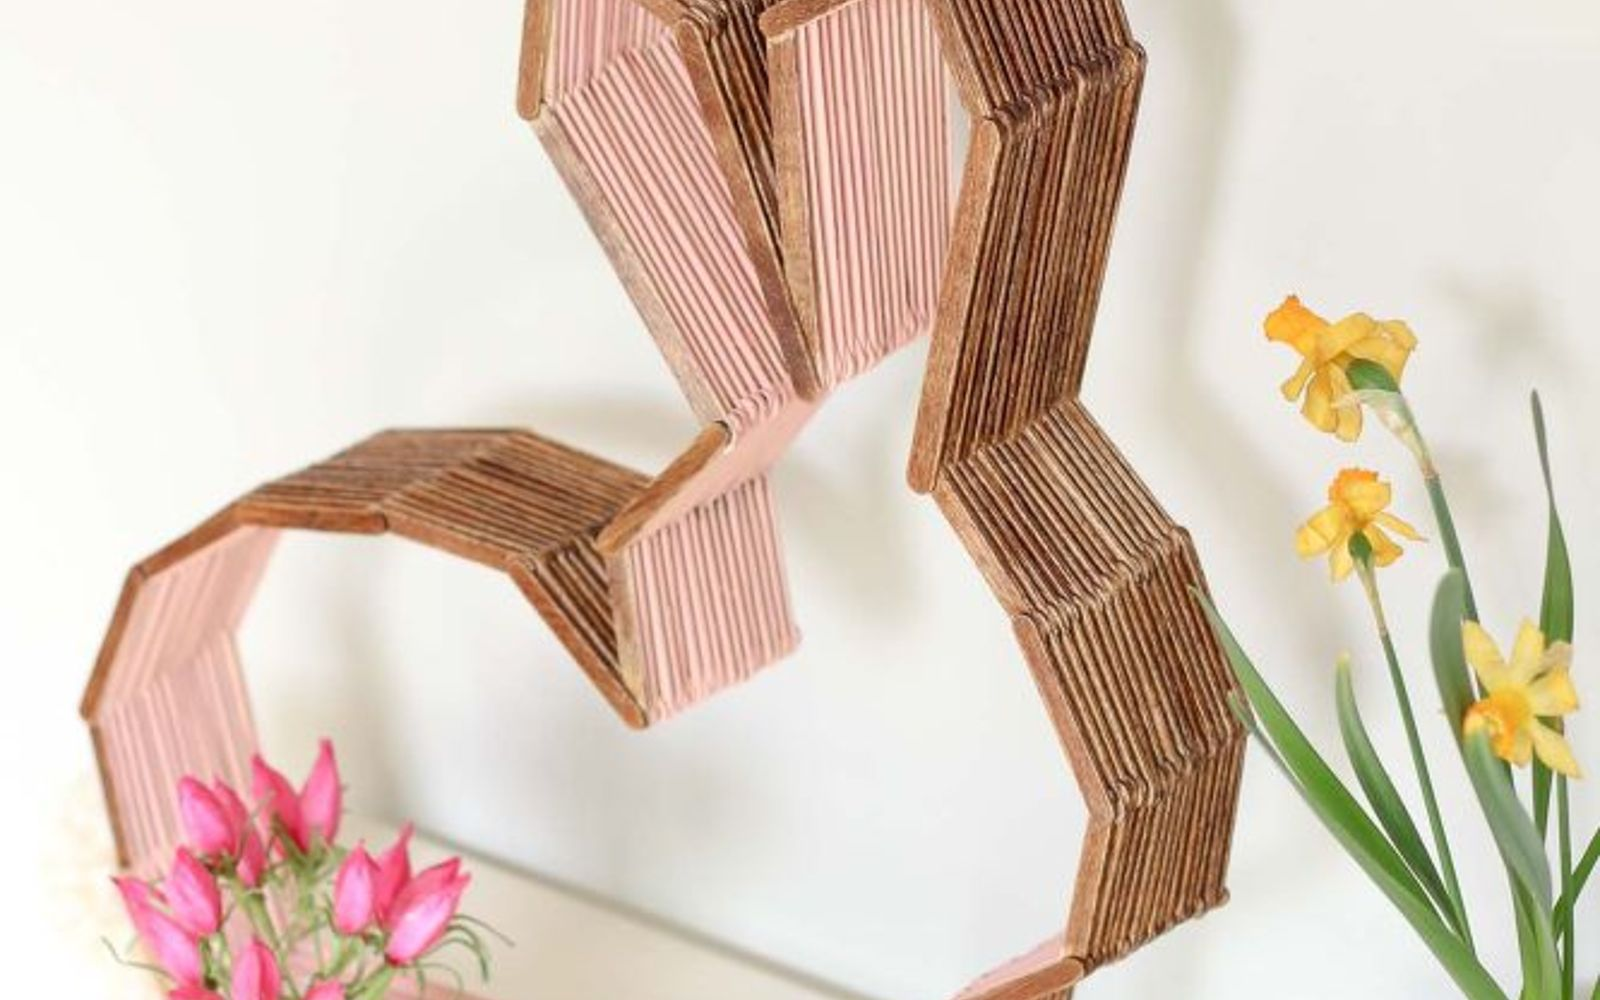 s these are the hottest diy spring trends of 2016, crafts, seasonal holiday decor, Make silhouette art using popsicle sticks